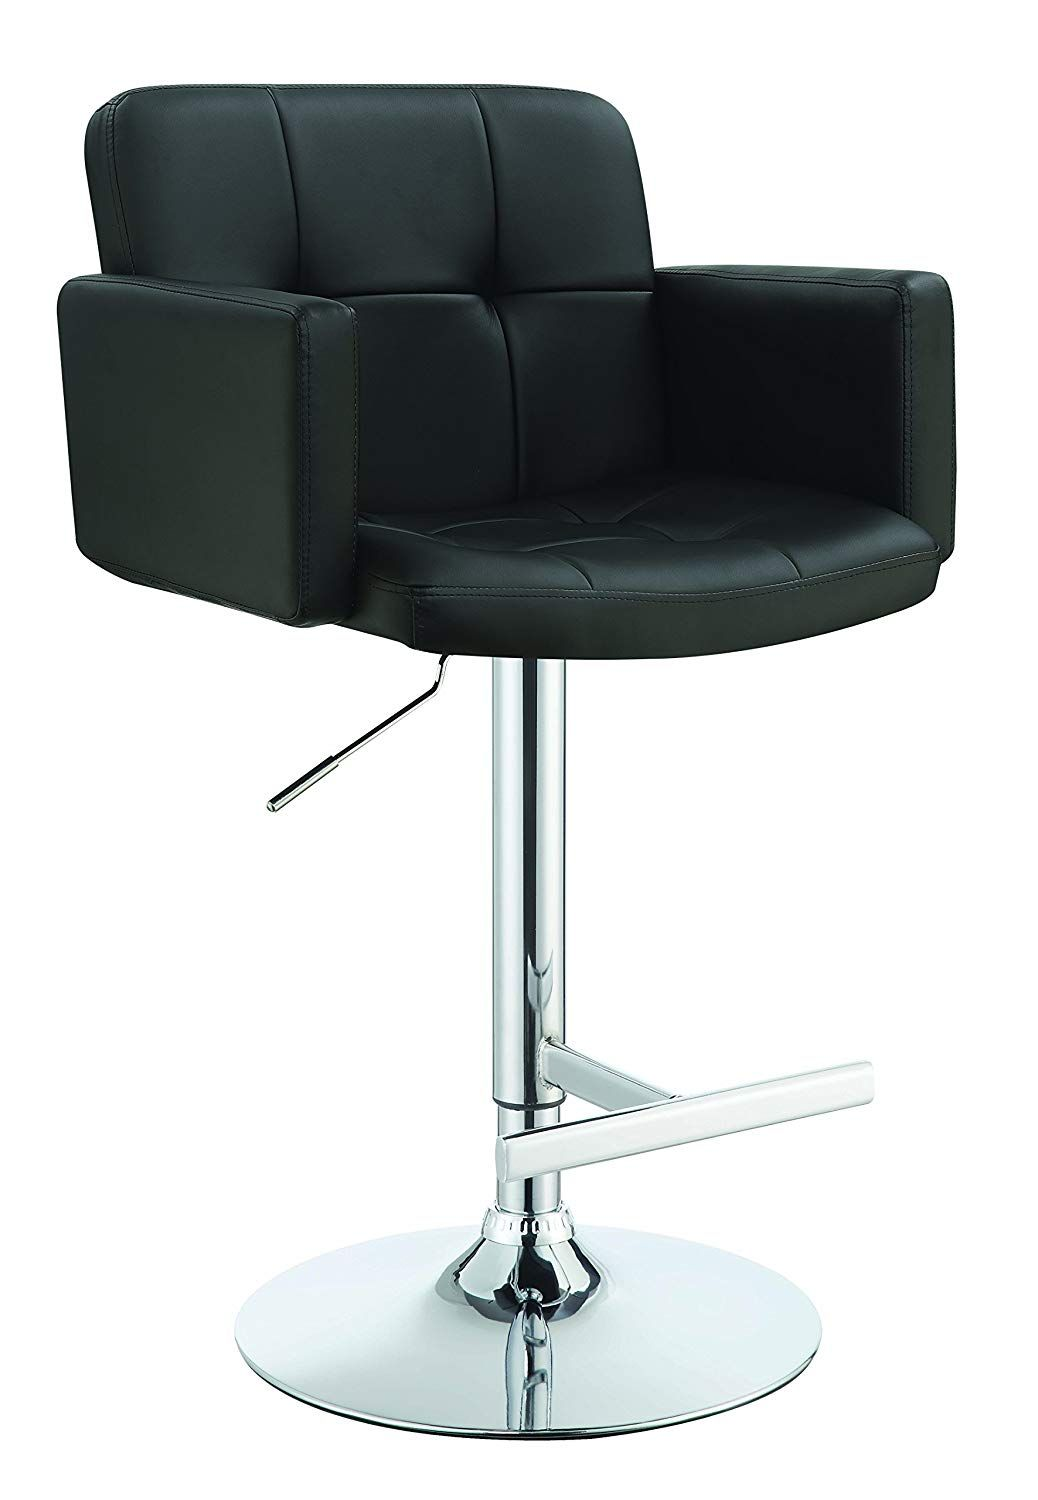 Terrific Coaster Adjustable Bar Stool With Arms In Black Faux Leather Onthecornerstone Fun Painted Chair Ideas Images Onthecornerstoneorg